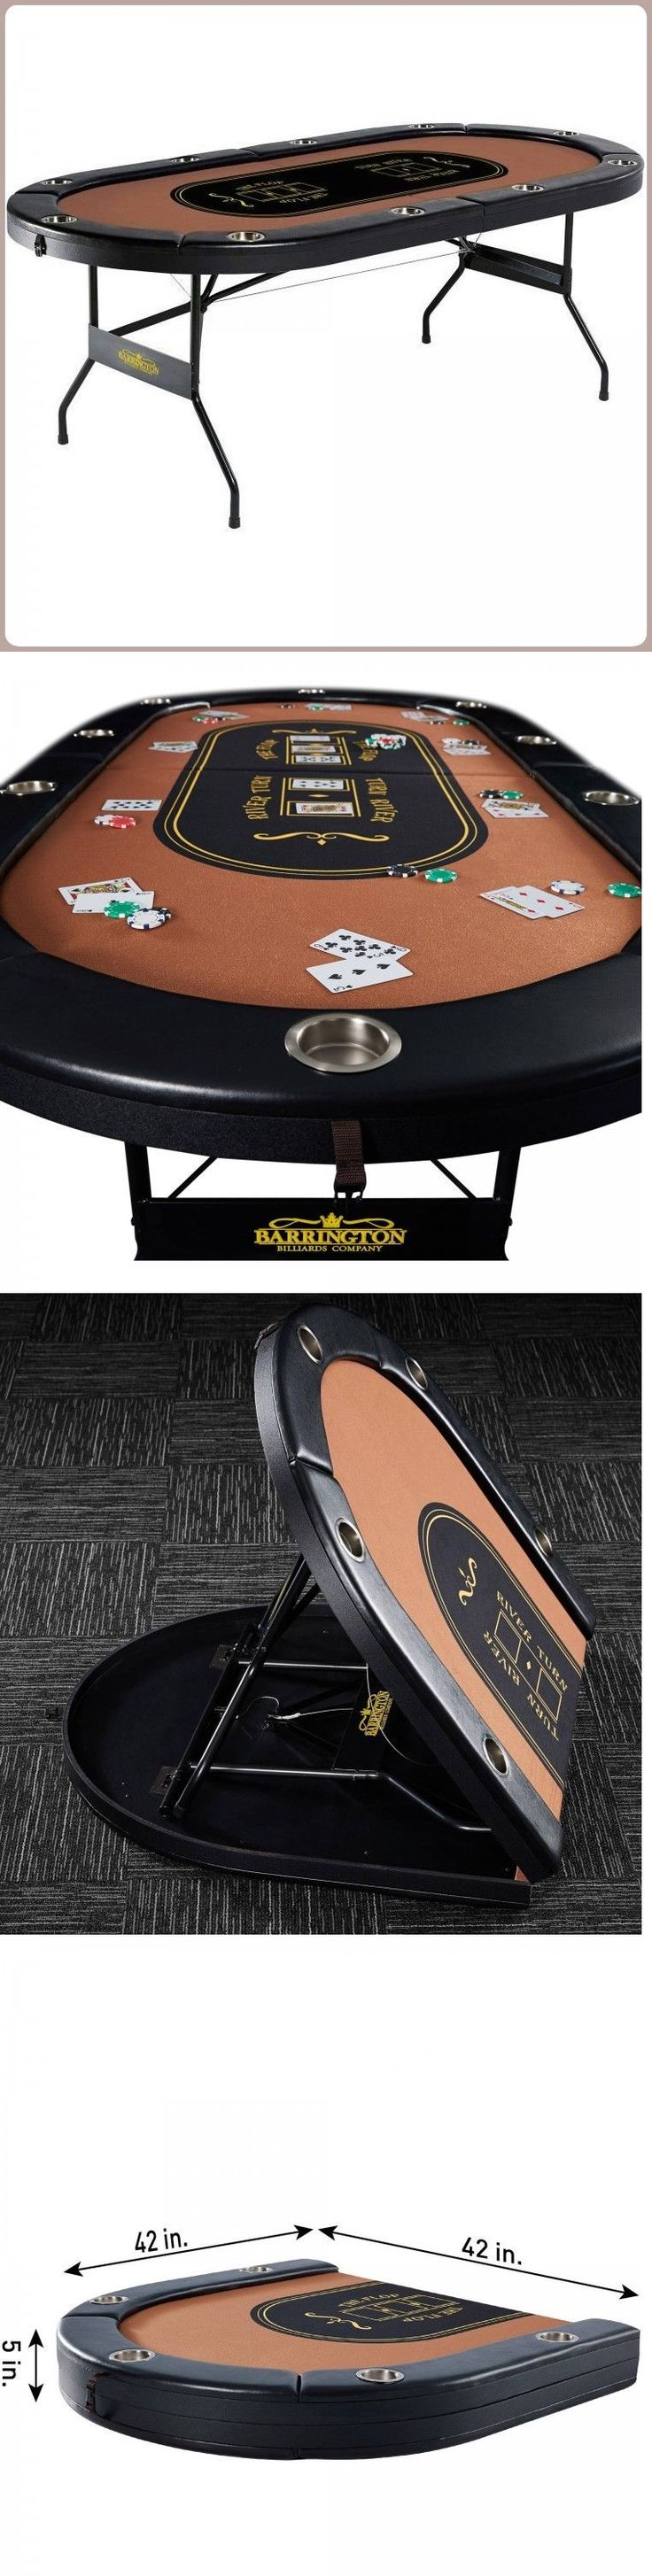 Card Tables and Tabletops 166572: 10 Player Folding Poker Table Casino Game Table Cushioned Rail Compact Storage -> BUY IT NOW ONLY: $179.95 on eBay!